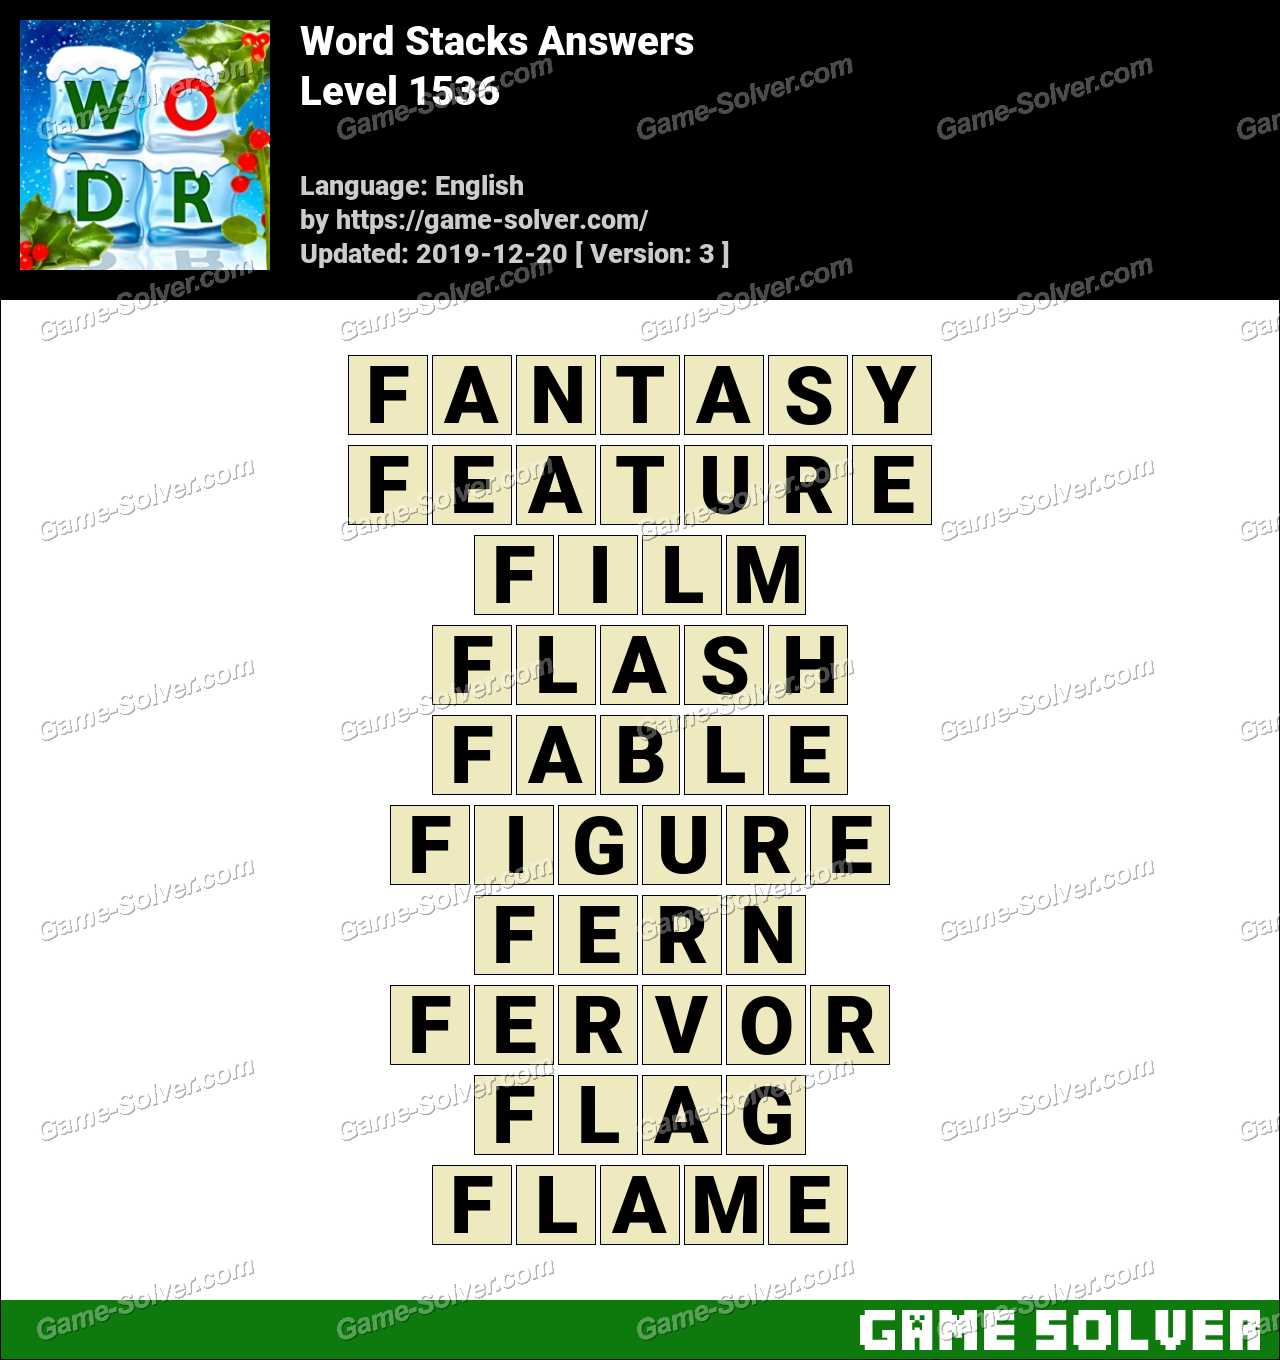 Word Stacks Level 1536 Answers